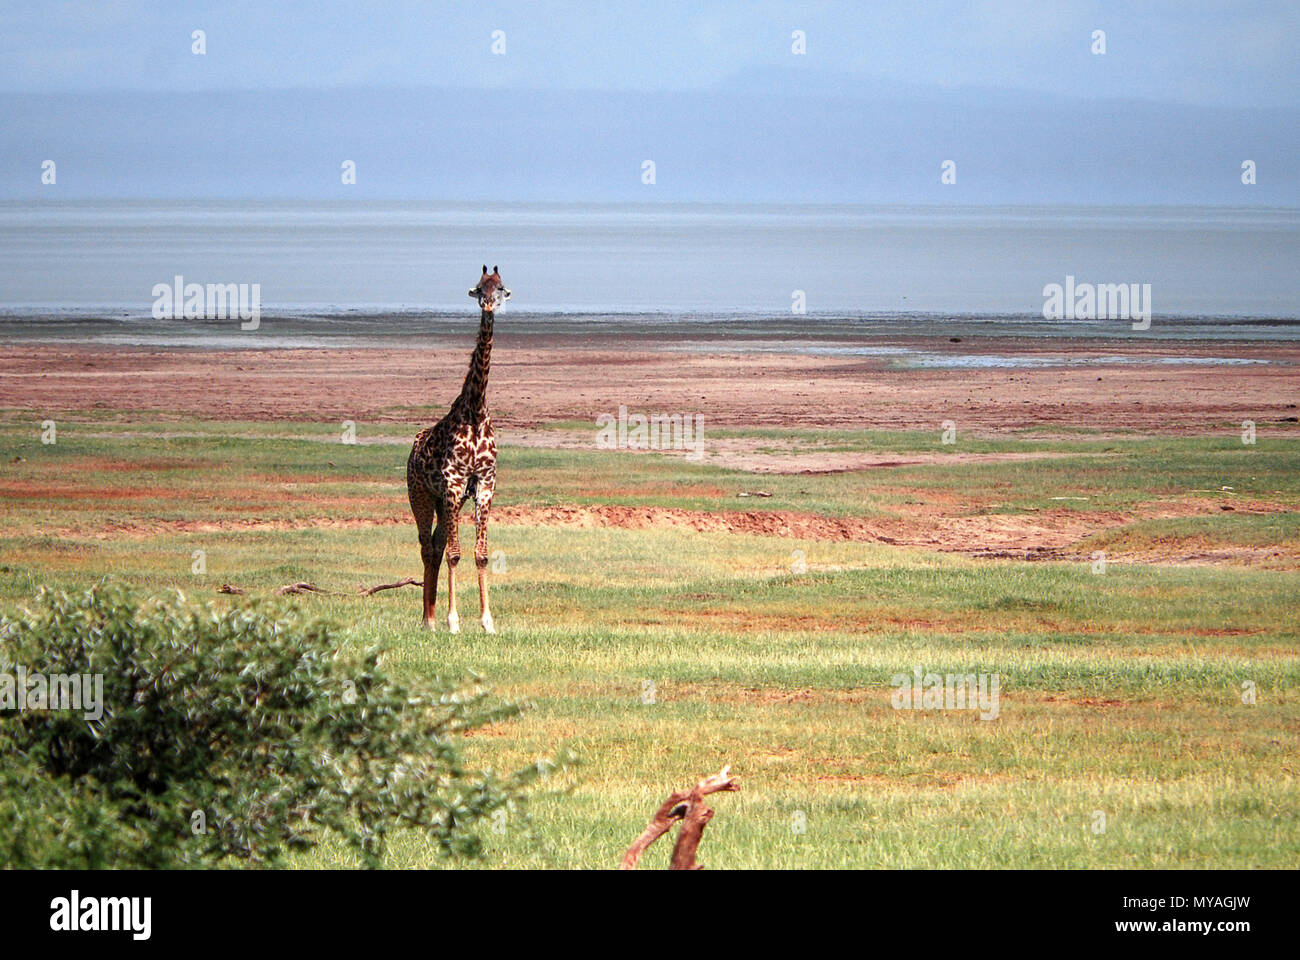 Giraffe in lake Manyara national park, Tanzania © Antonio Ciufo - Stock Image